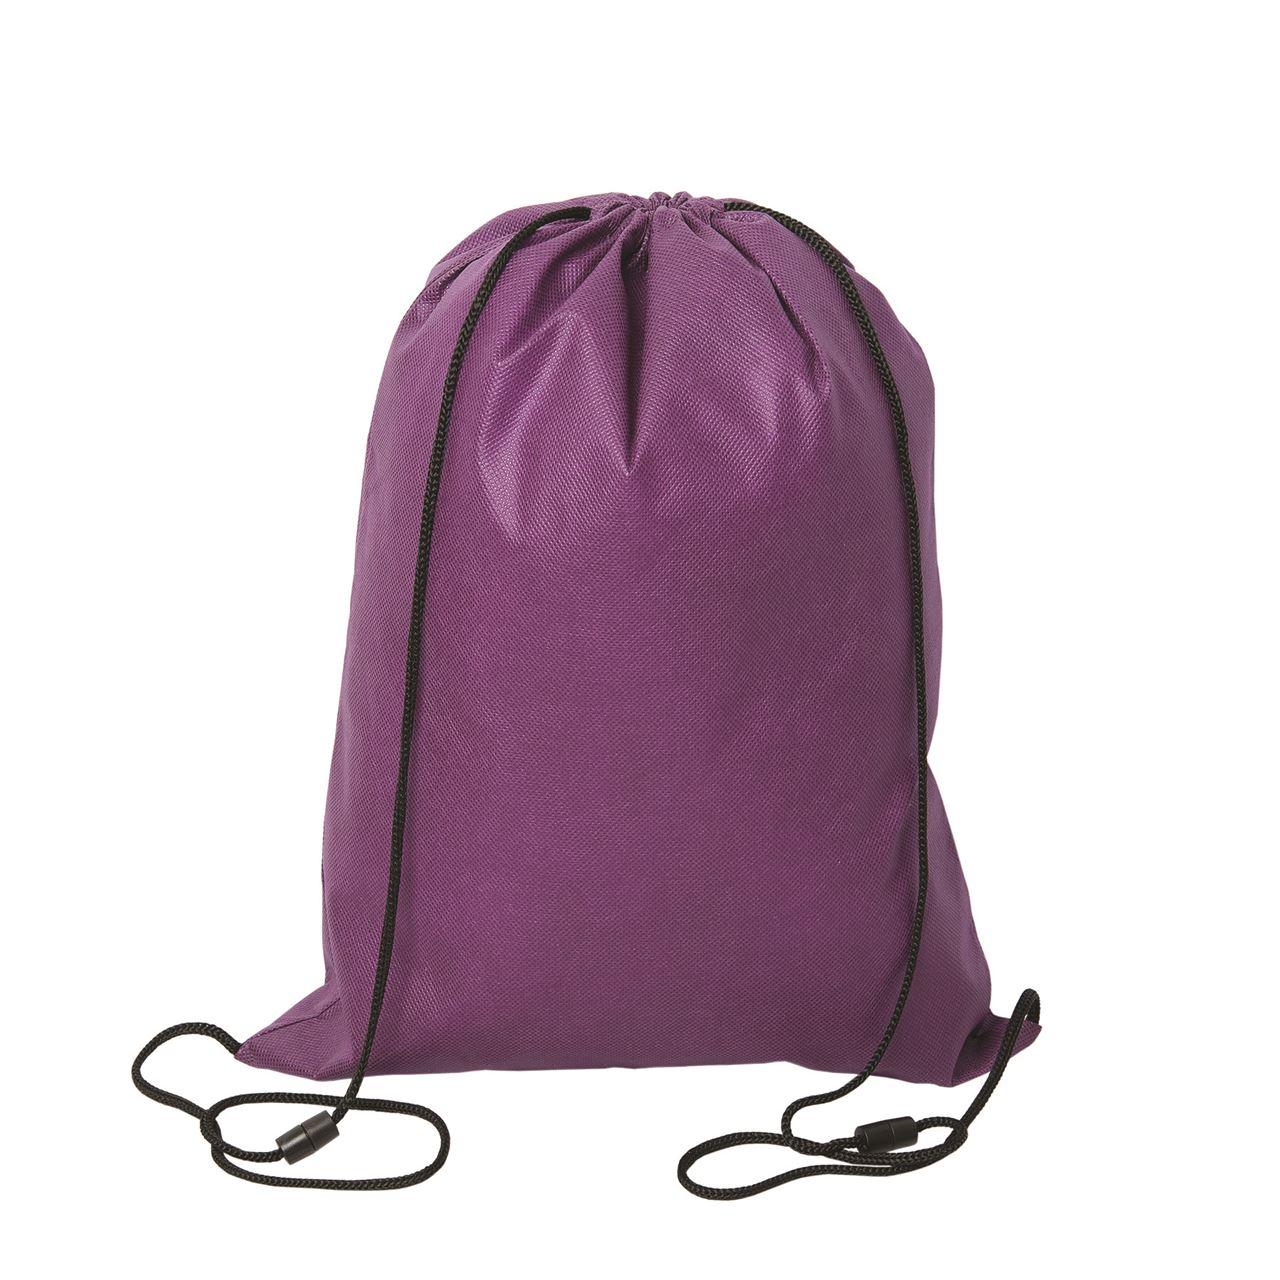 Picture of DEBCO Small Fry Non Woven Drawstring Bag